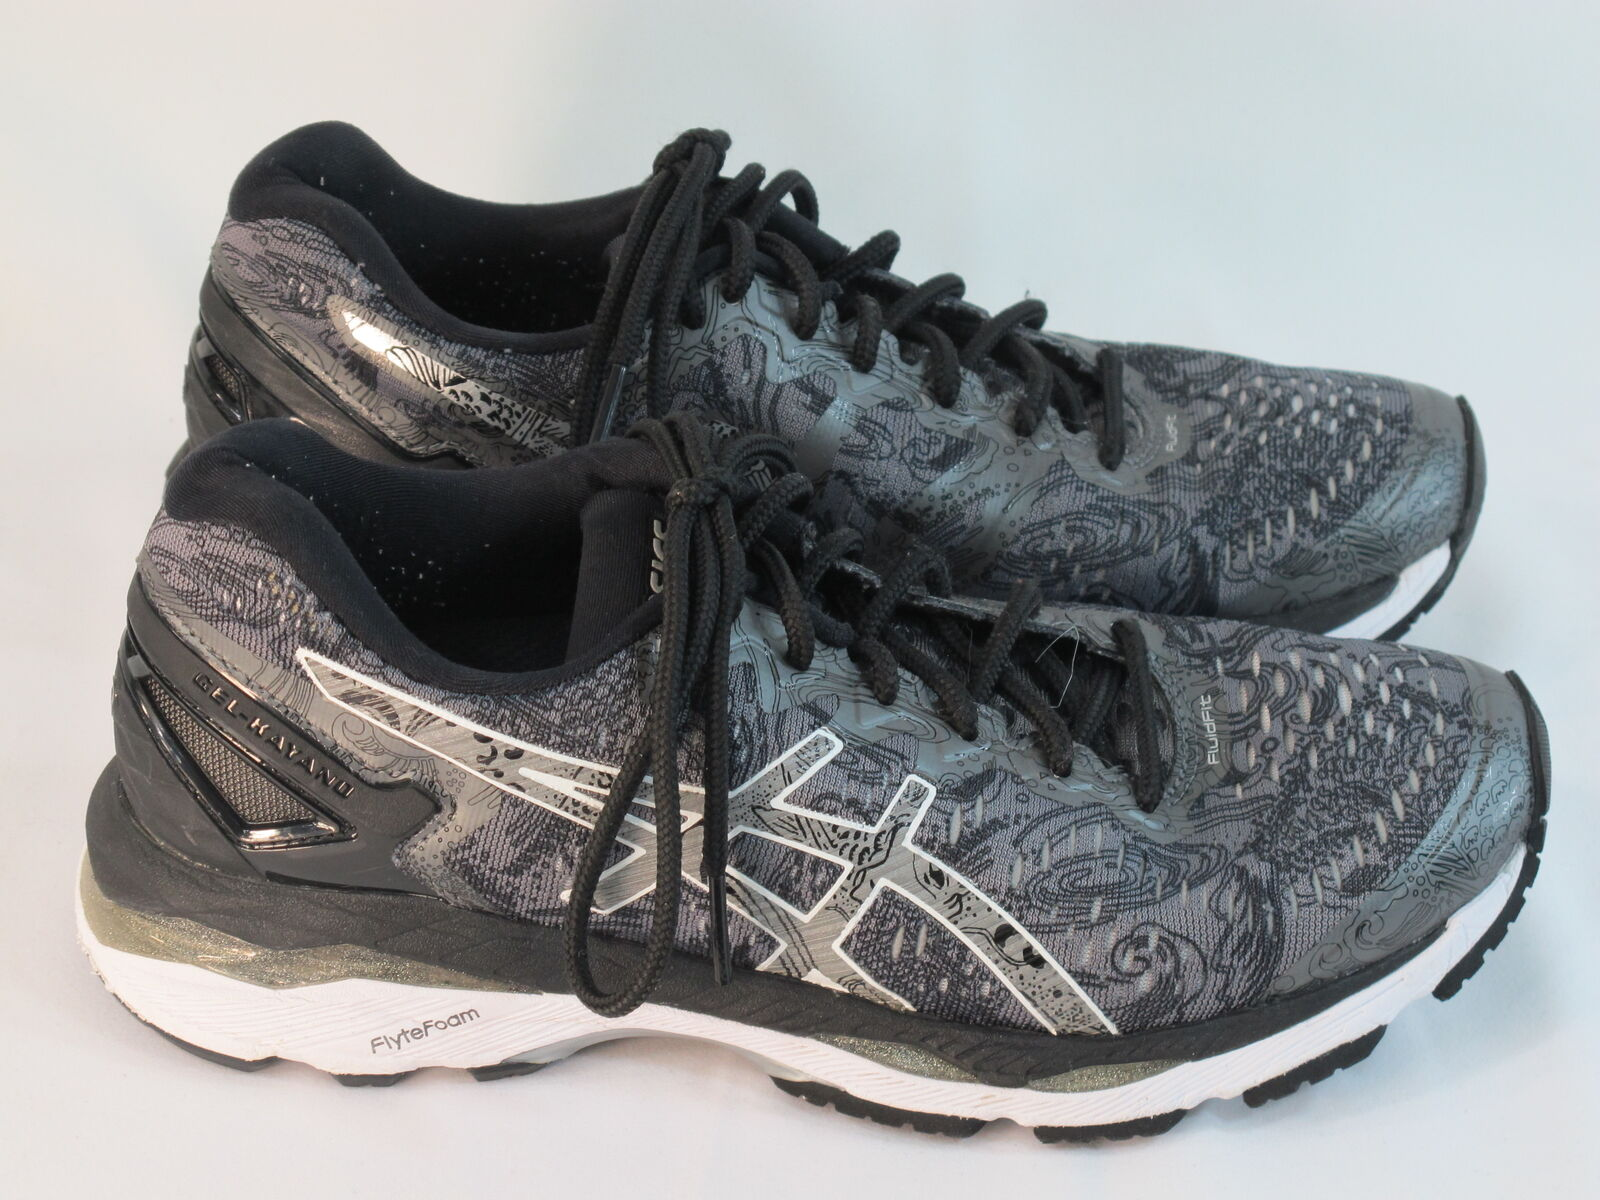 ASICS Gel Kayano 23 Lite-Show Running Running Running shoes Women's Size 6.5 US Excellent Plus af8e71